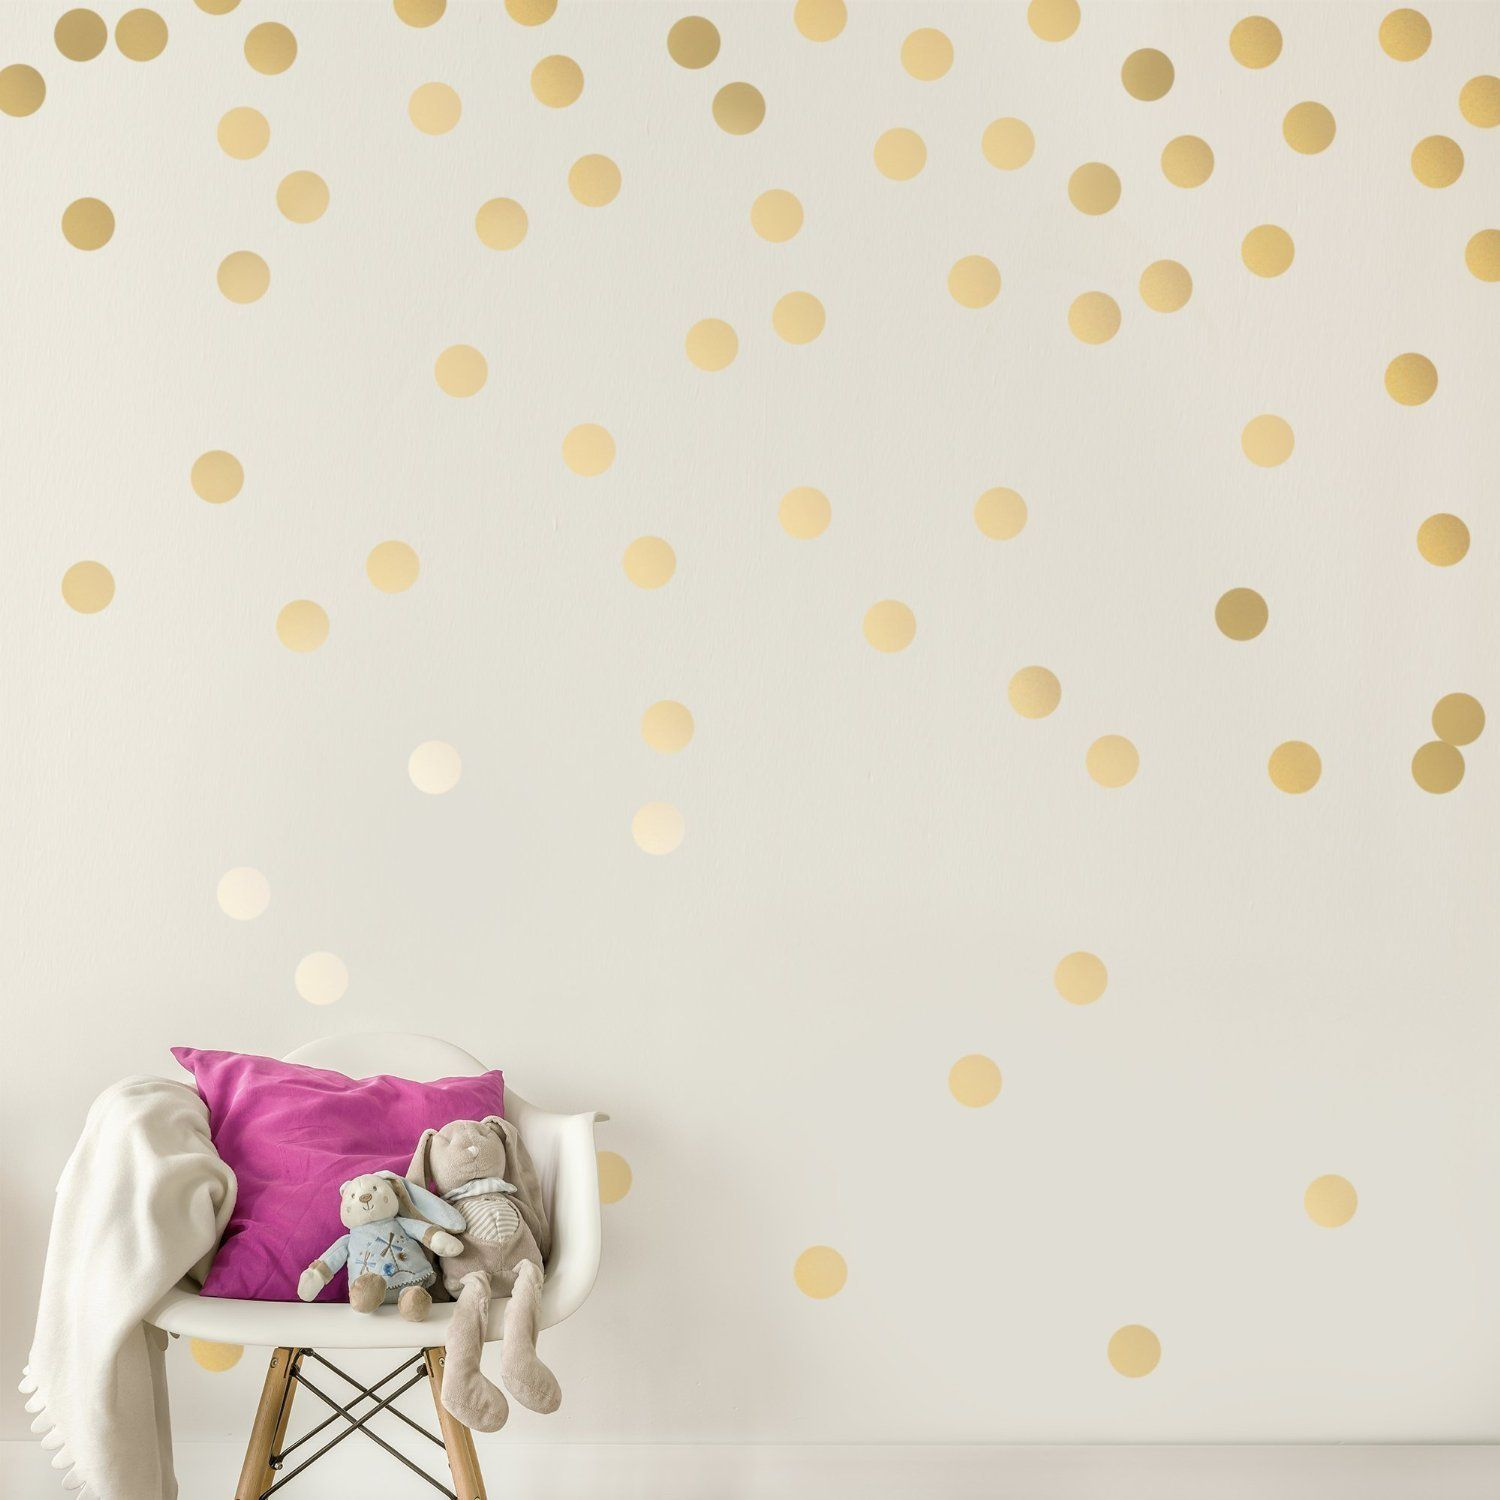 Amazoncom Gold Wall Decal Dots Decals Easy Peel Stick - How to make vinyl wall decals stick